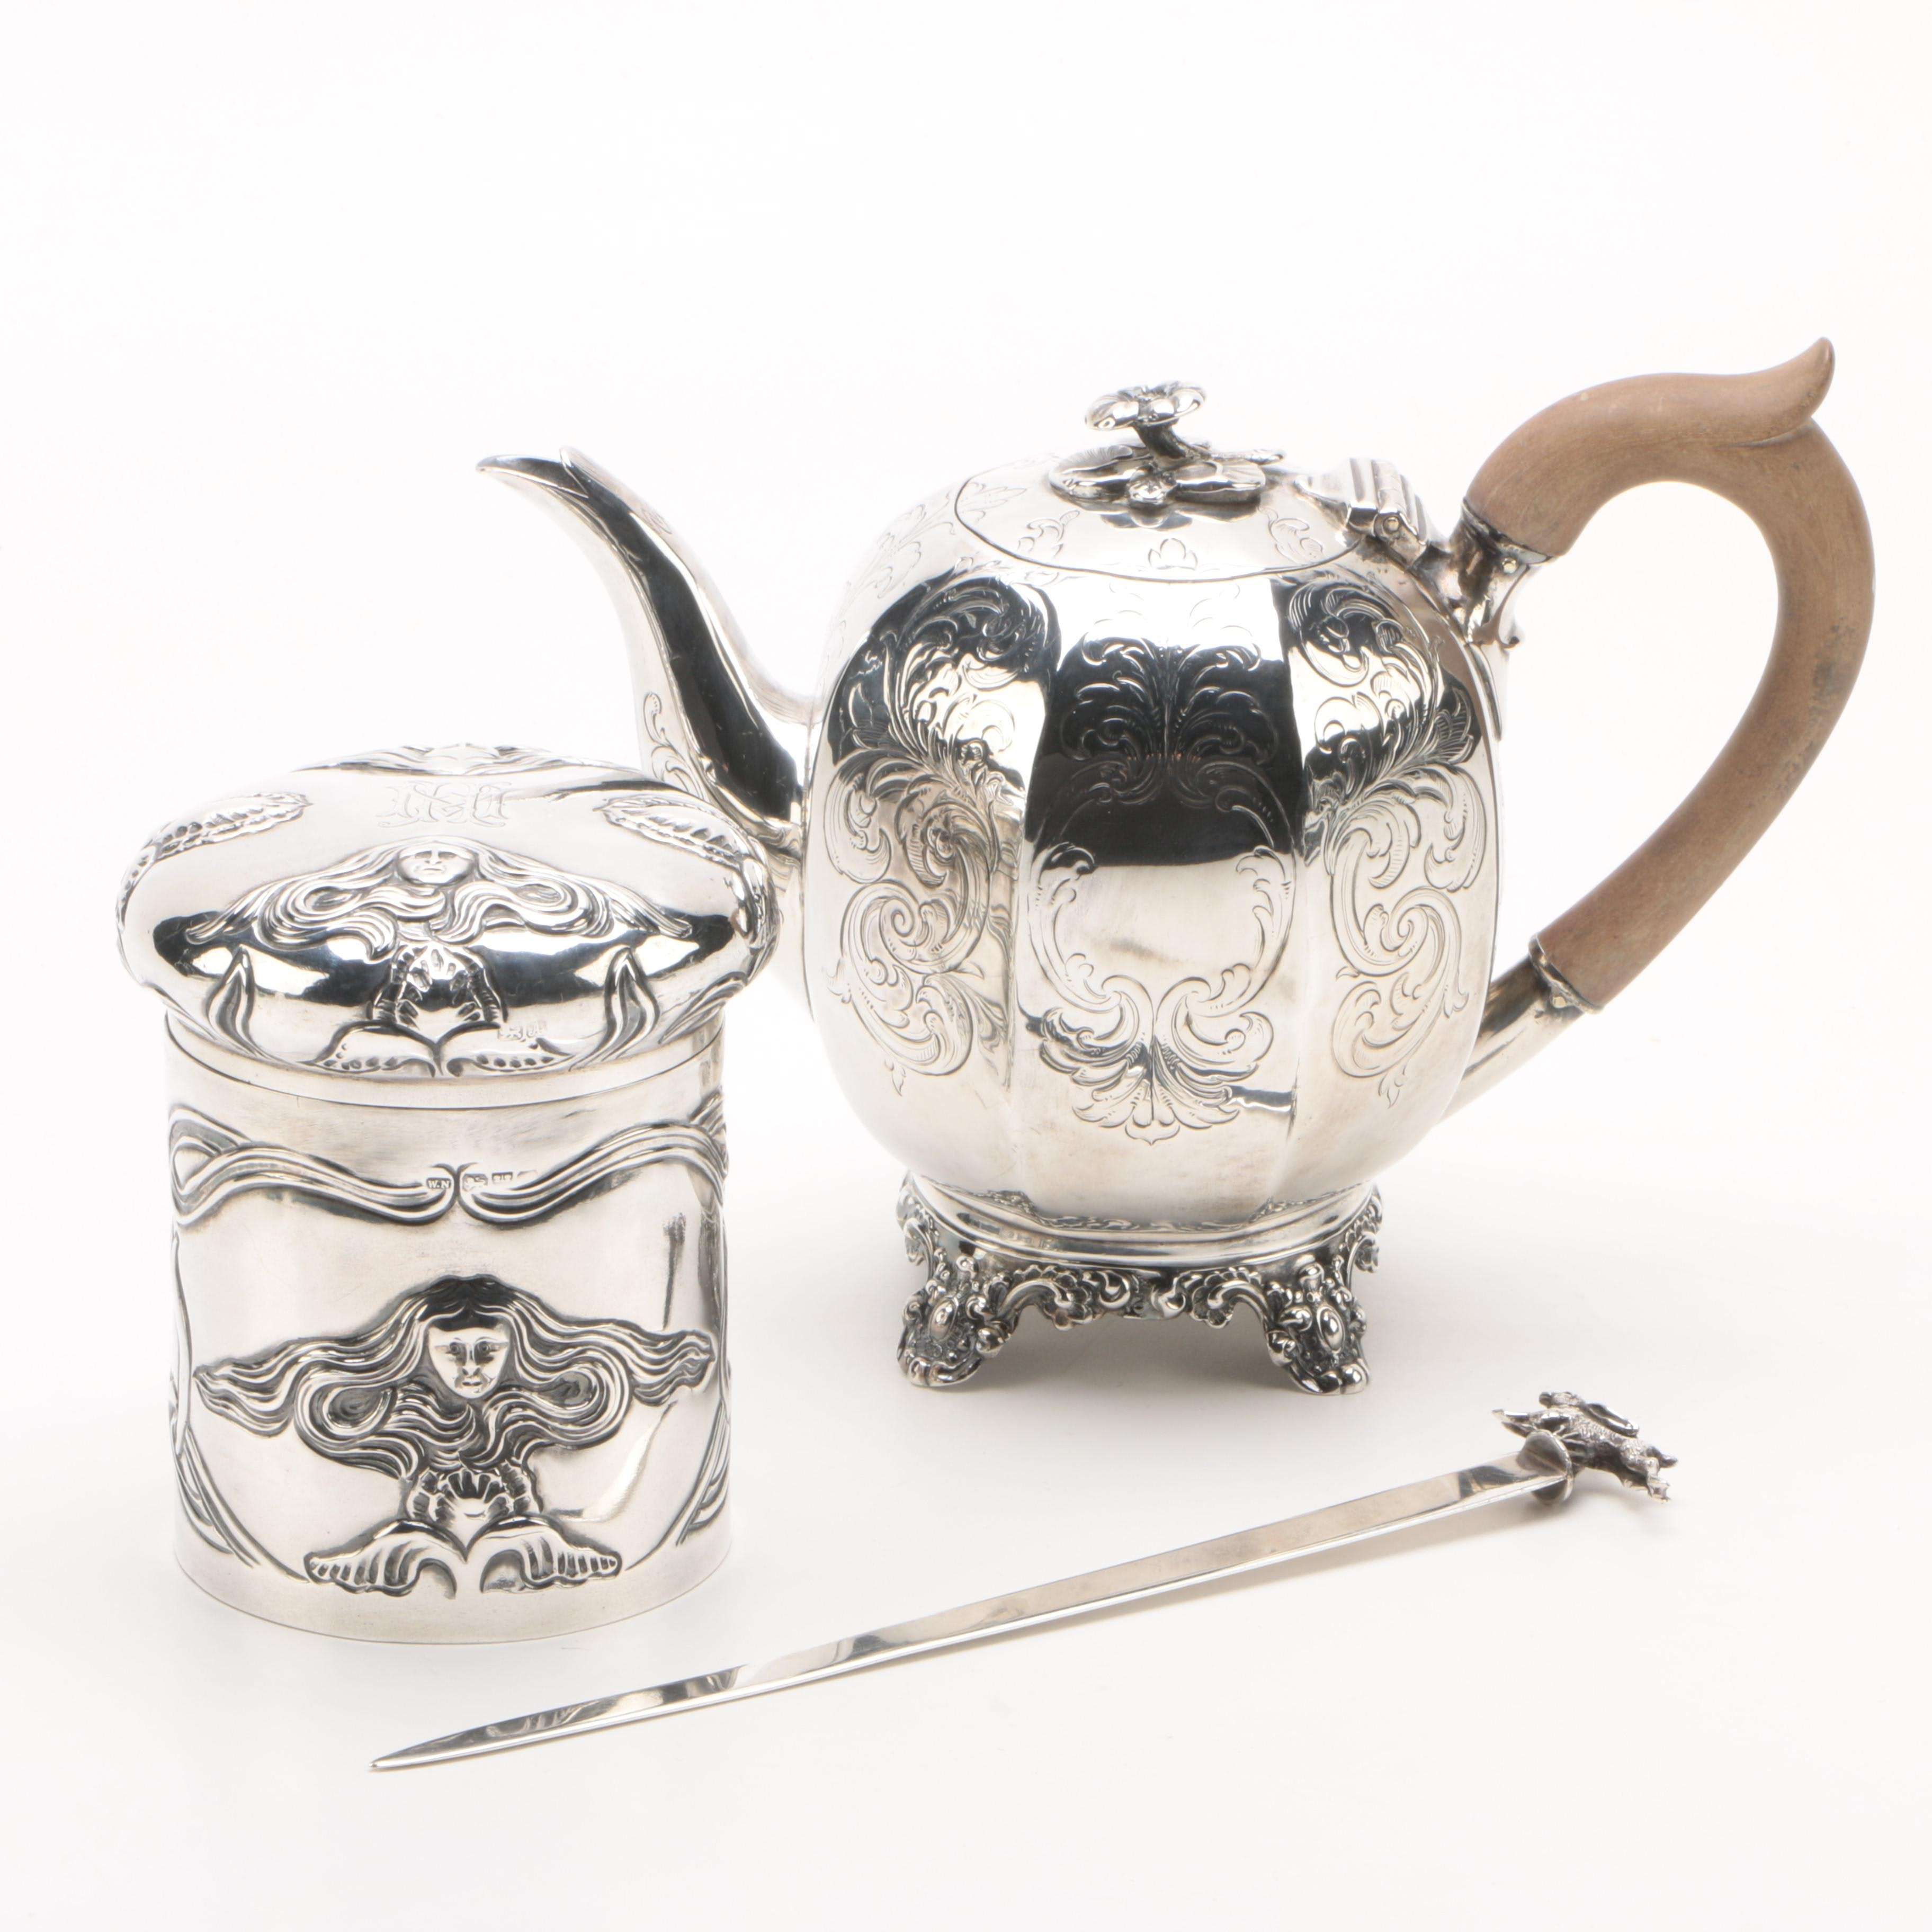 1844 Pierce & Burrows English Sterling Silver Teapot with Jar and Letter Opener